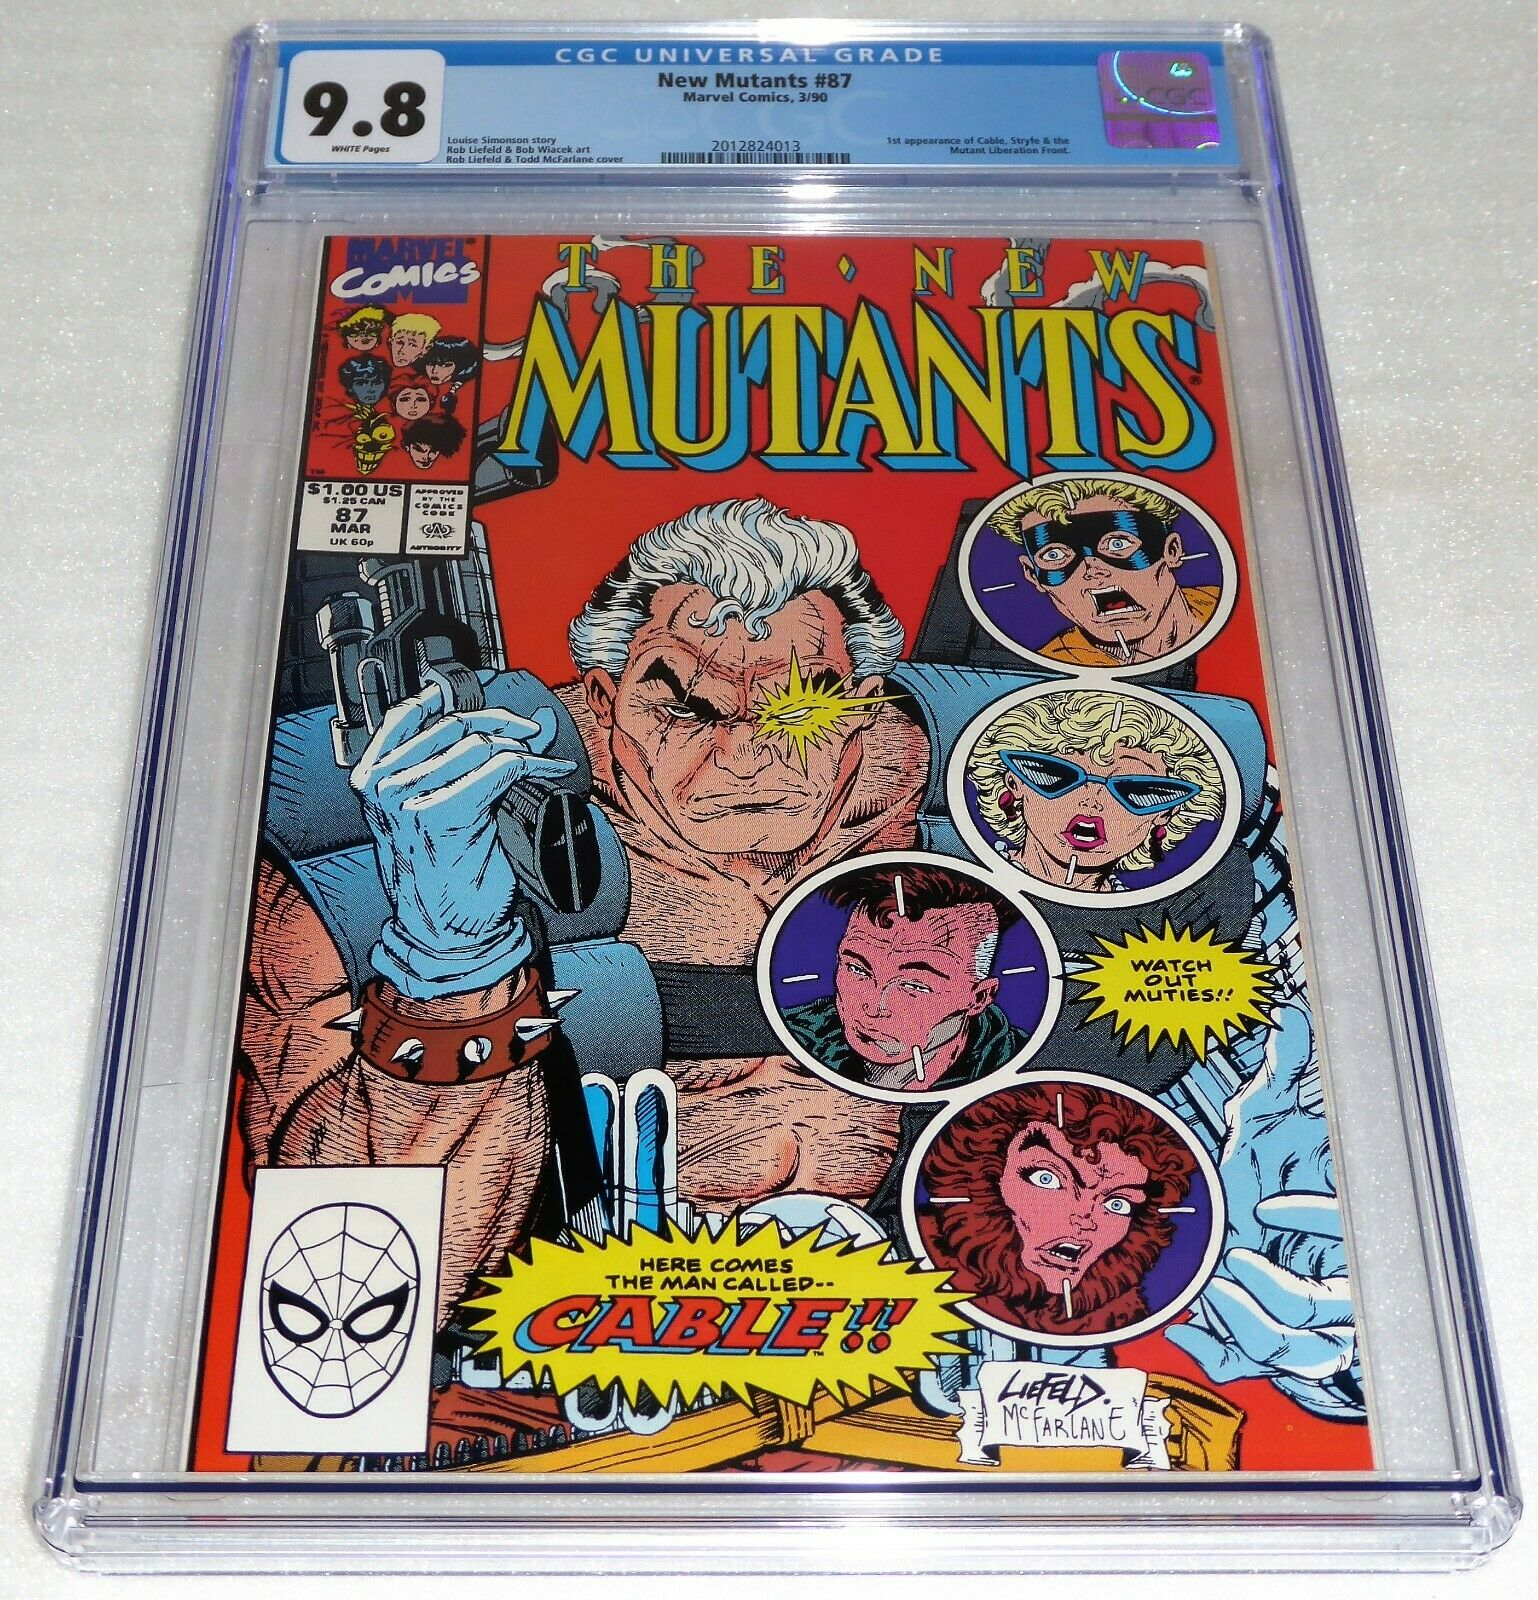 New Mutants #87 CGC Universal Grade Comic 9.8 1st Appearance of Cable Marvel POW